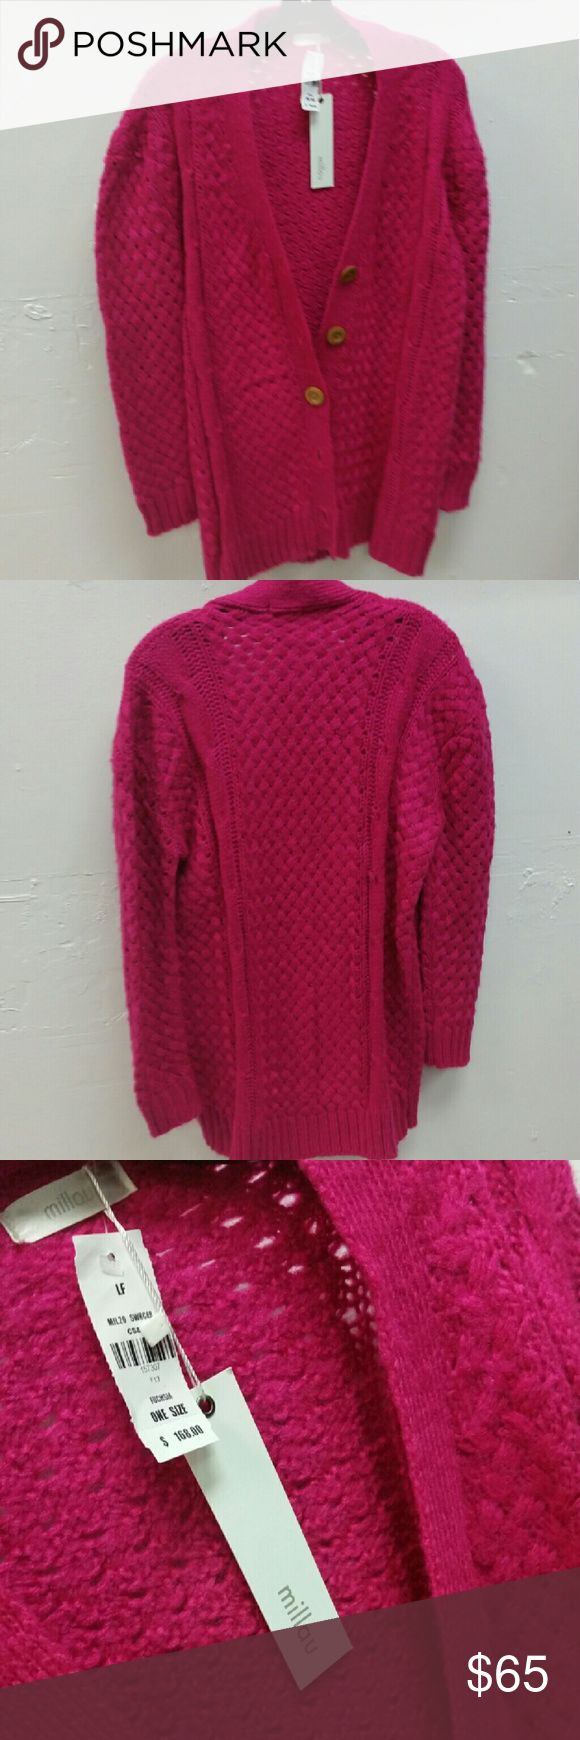 LF hot pink cardigan sweater one size LF hot pink cardigan, tried to get some good pics of this beauty sweater the color is beautiful LF Sweaters Cardigans